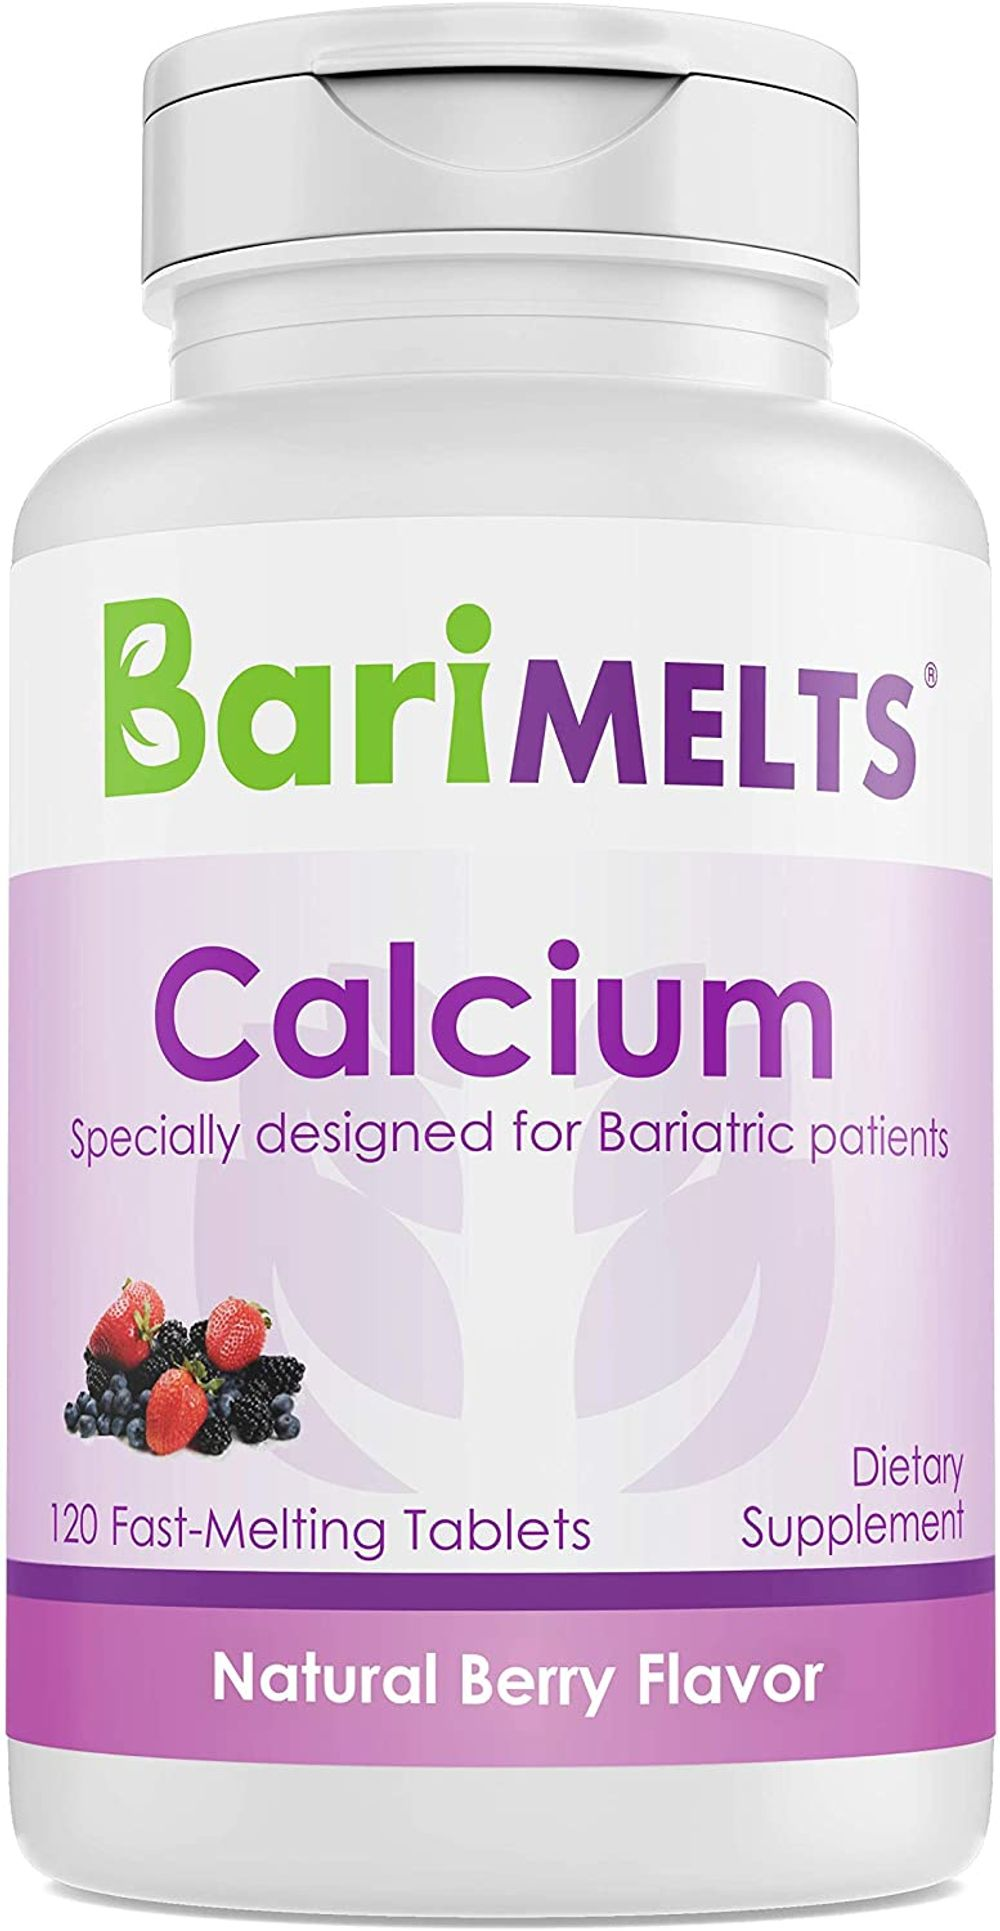 BariMelts Calcium Citrate, Dissolvable Bariatric Vitamins, Natural Berry Flavor, 120 Fast Melting Tablets